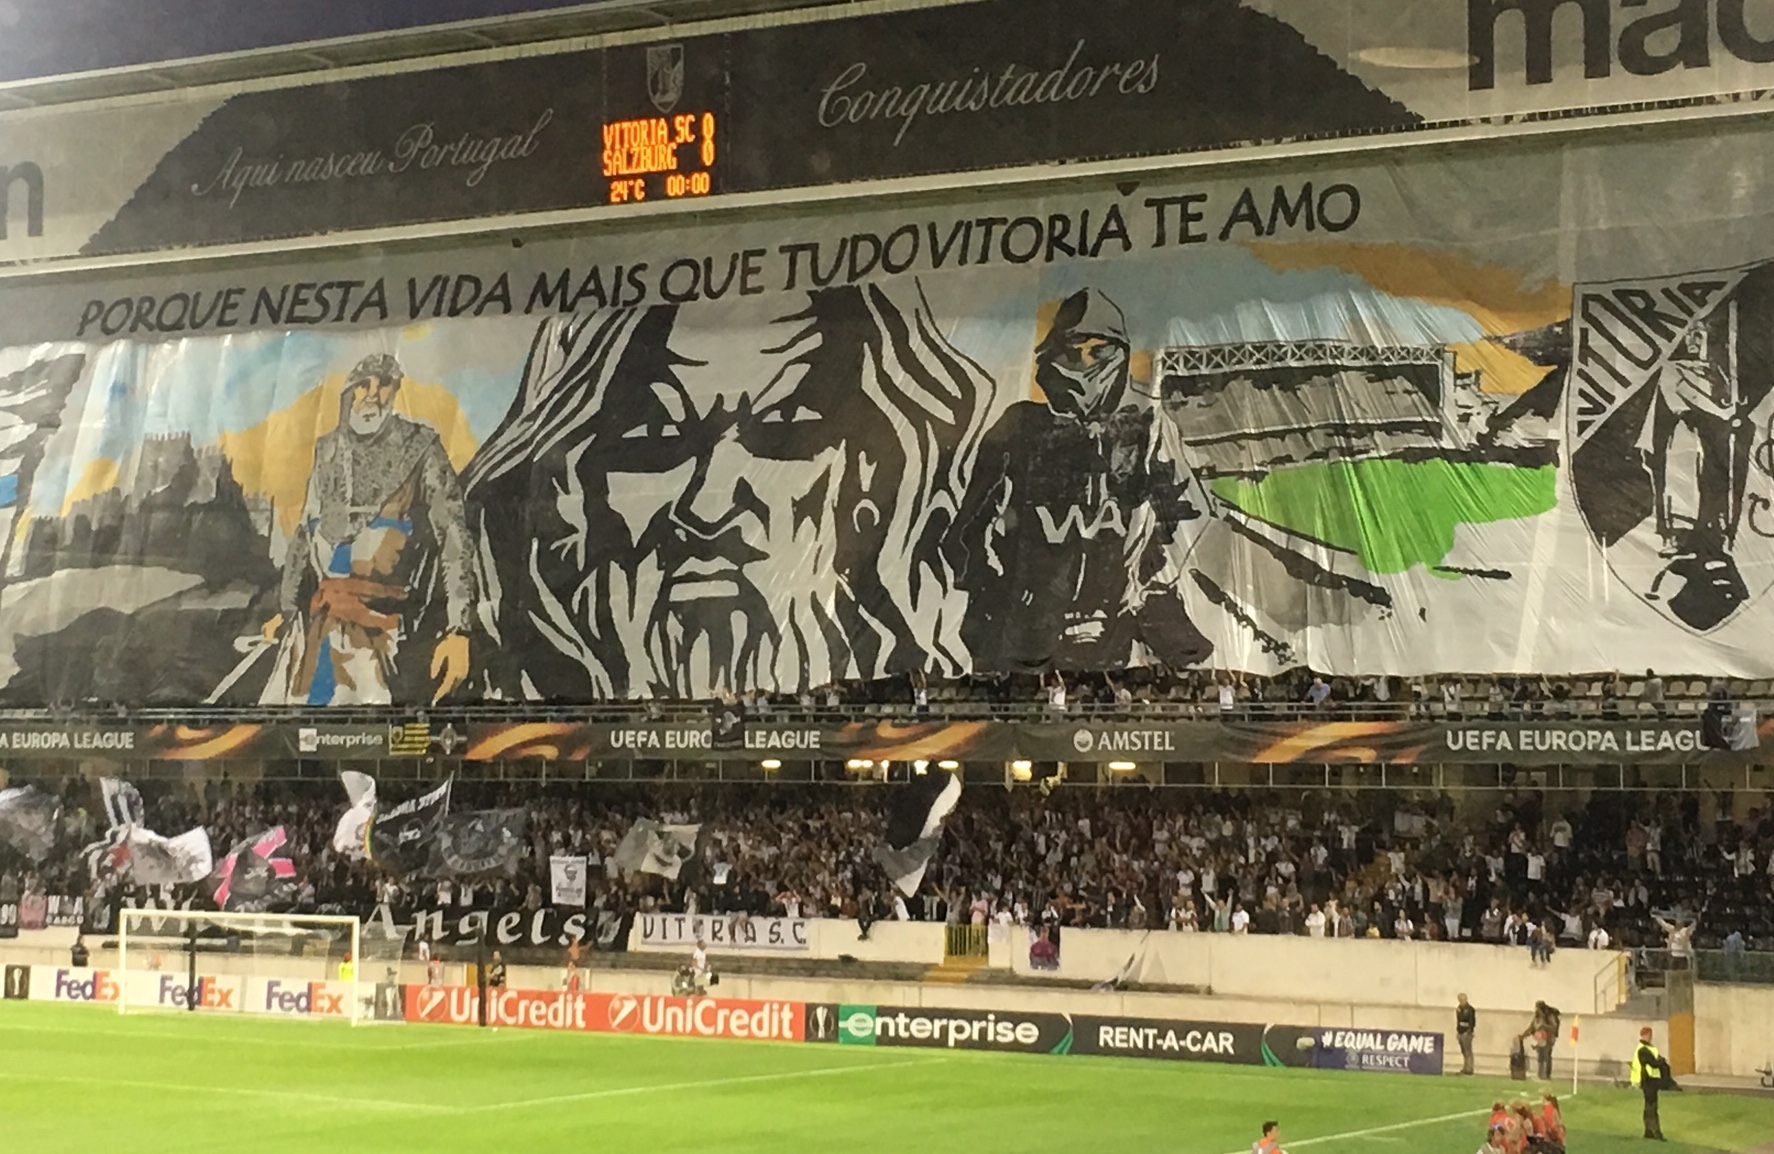 vitoria guimaraes europa league